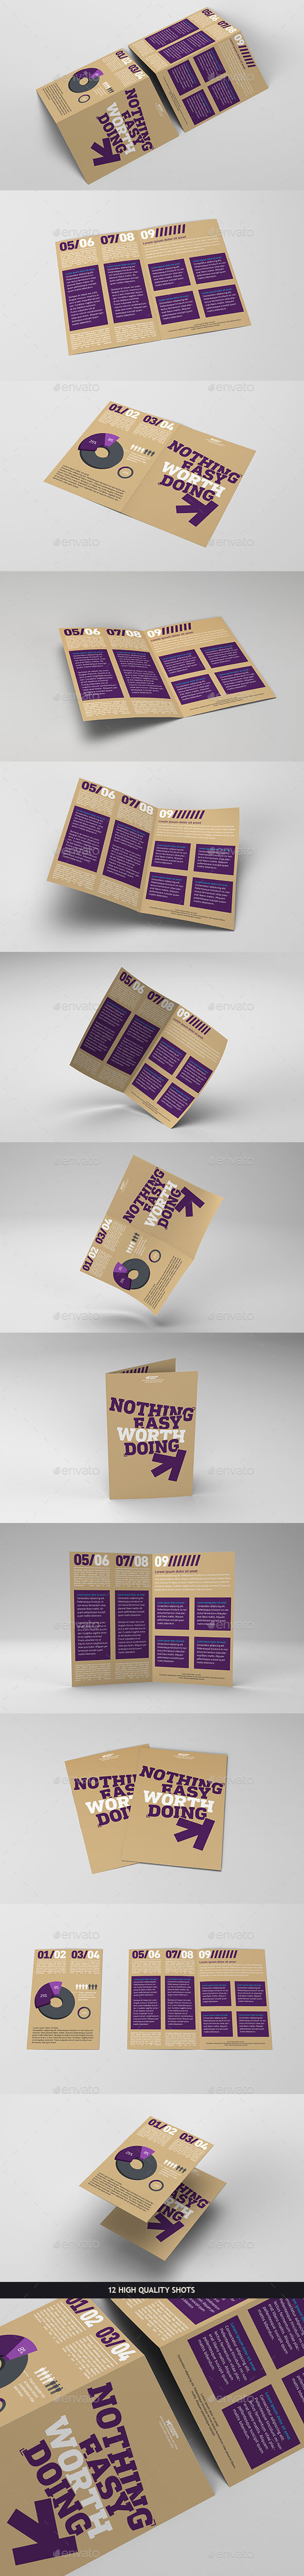 GraphicRiver Bi-fold Brochure Mockup Pack 10329393